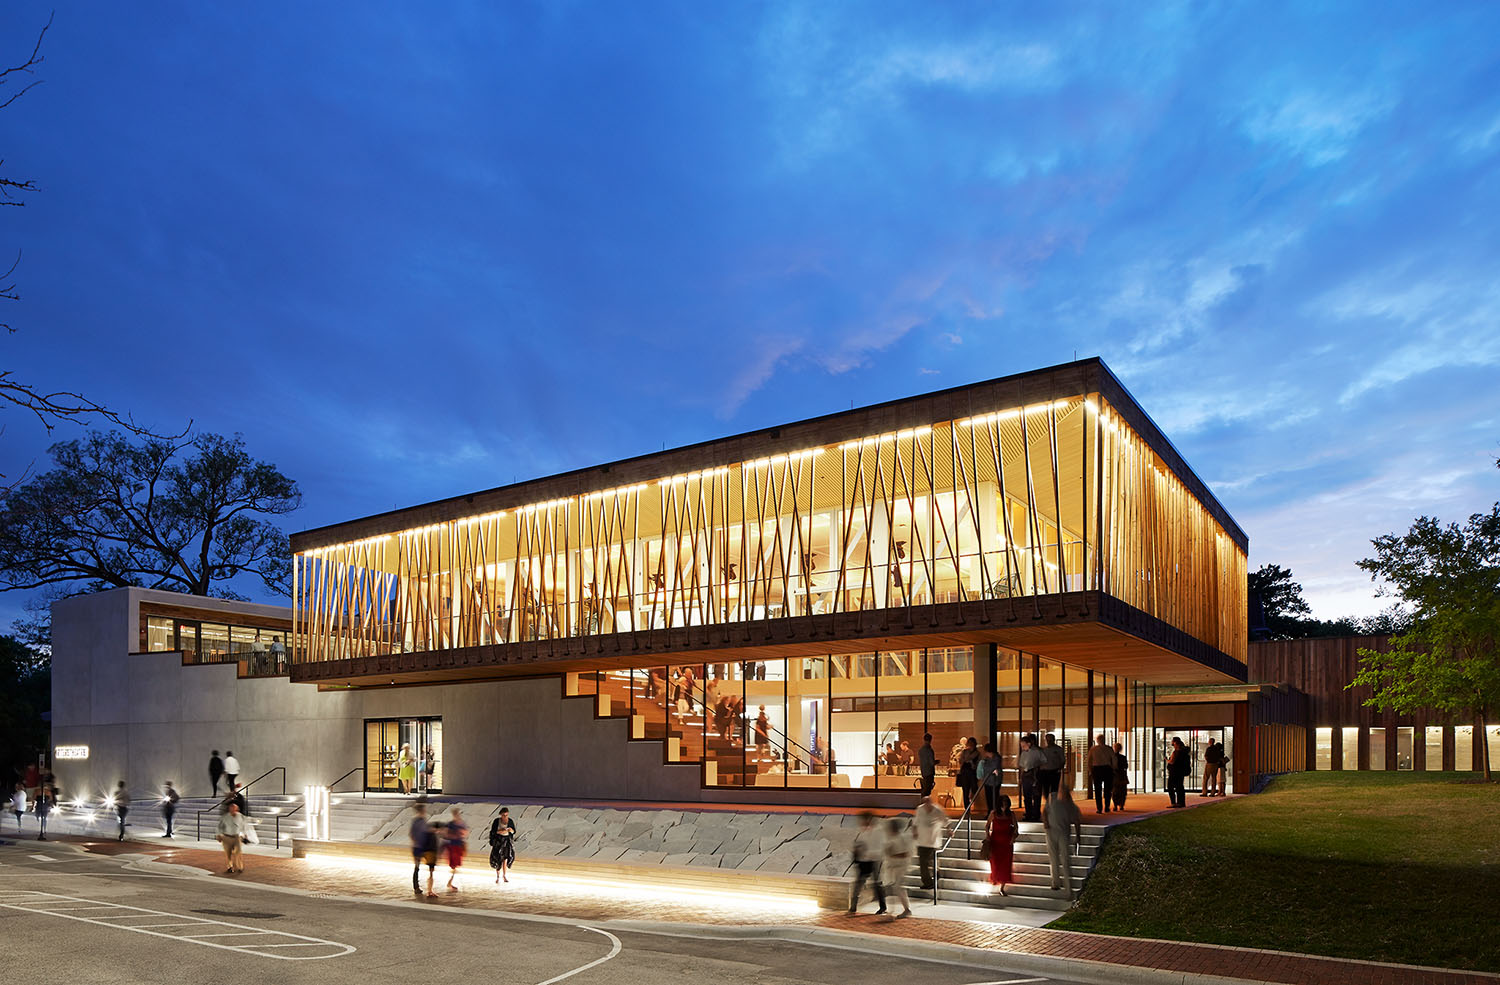 At night, the theater glows from within, drawing interest and activity to this important civic and cultural anchor.